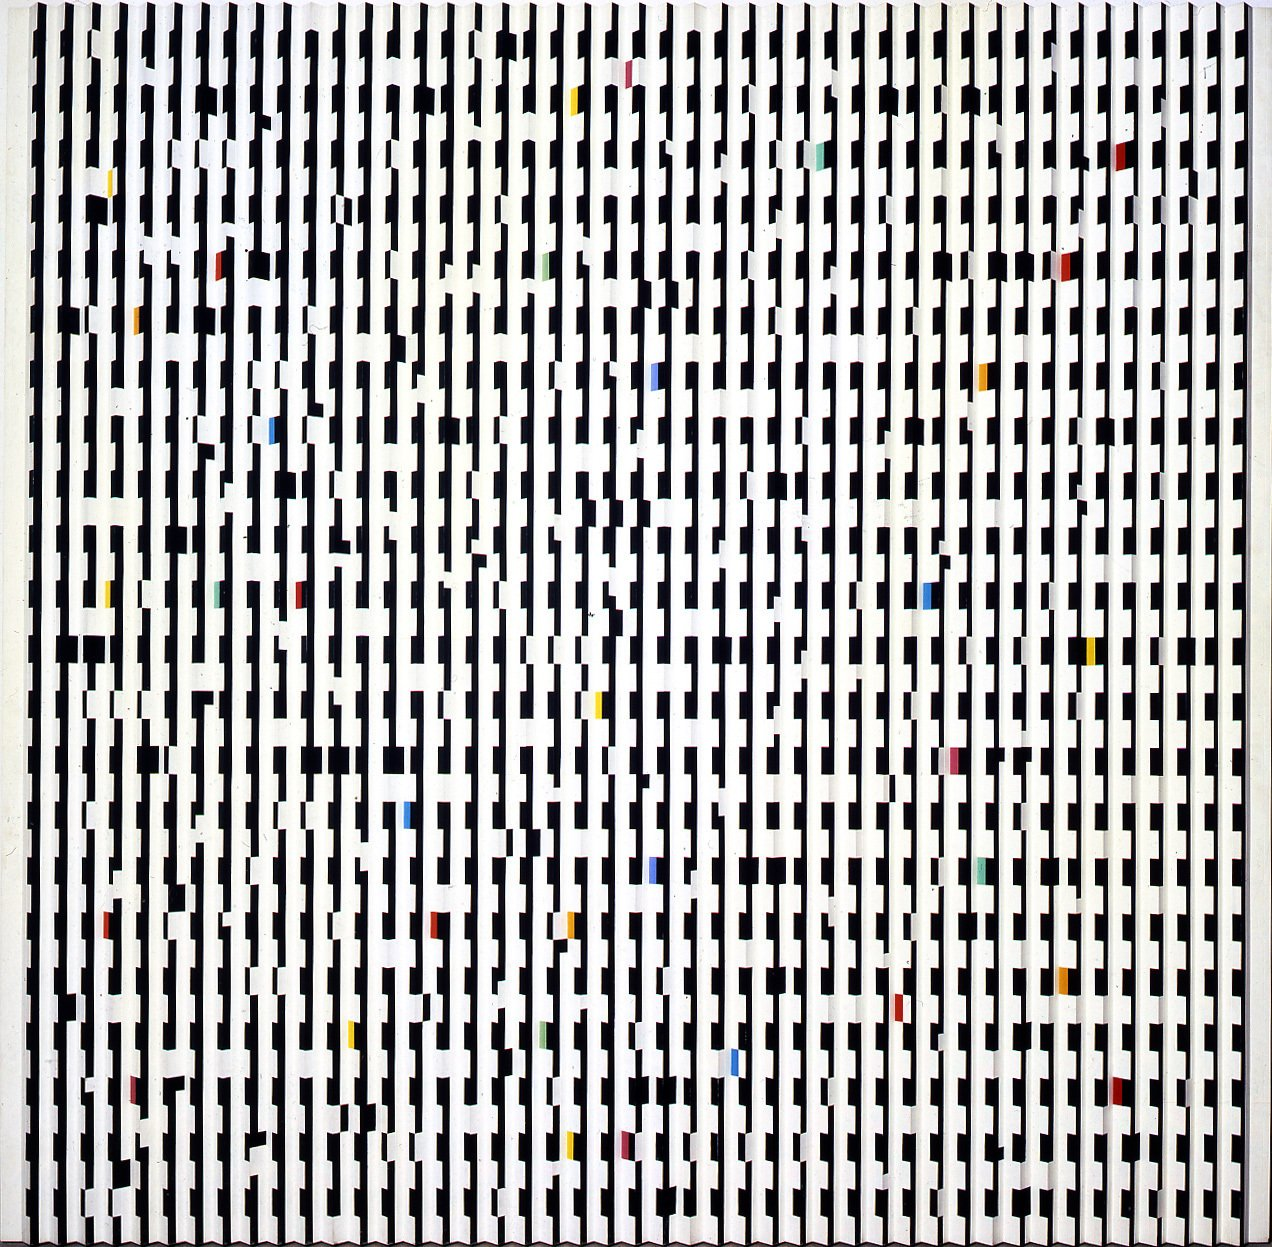 """Pictured is """"Staccato"""" by Yaacov Agam, an Israeli artist who became a leading figure in the op art movement.  This is What Design Looked Like in Israel in 1965 by Allie Weiss"""